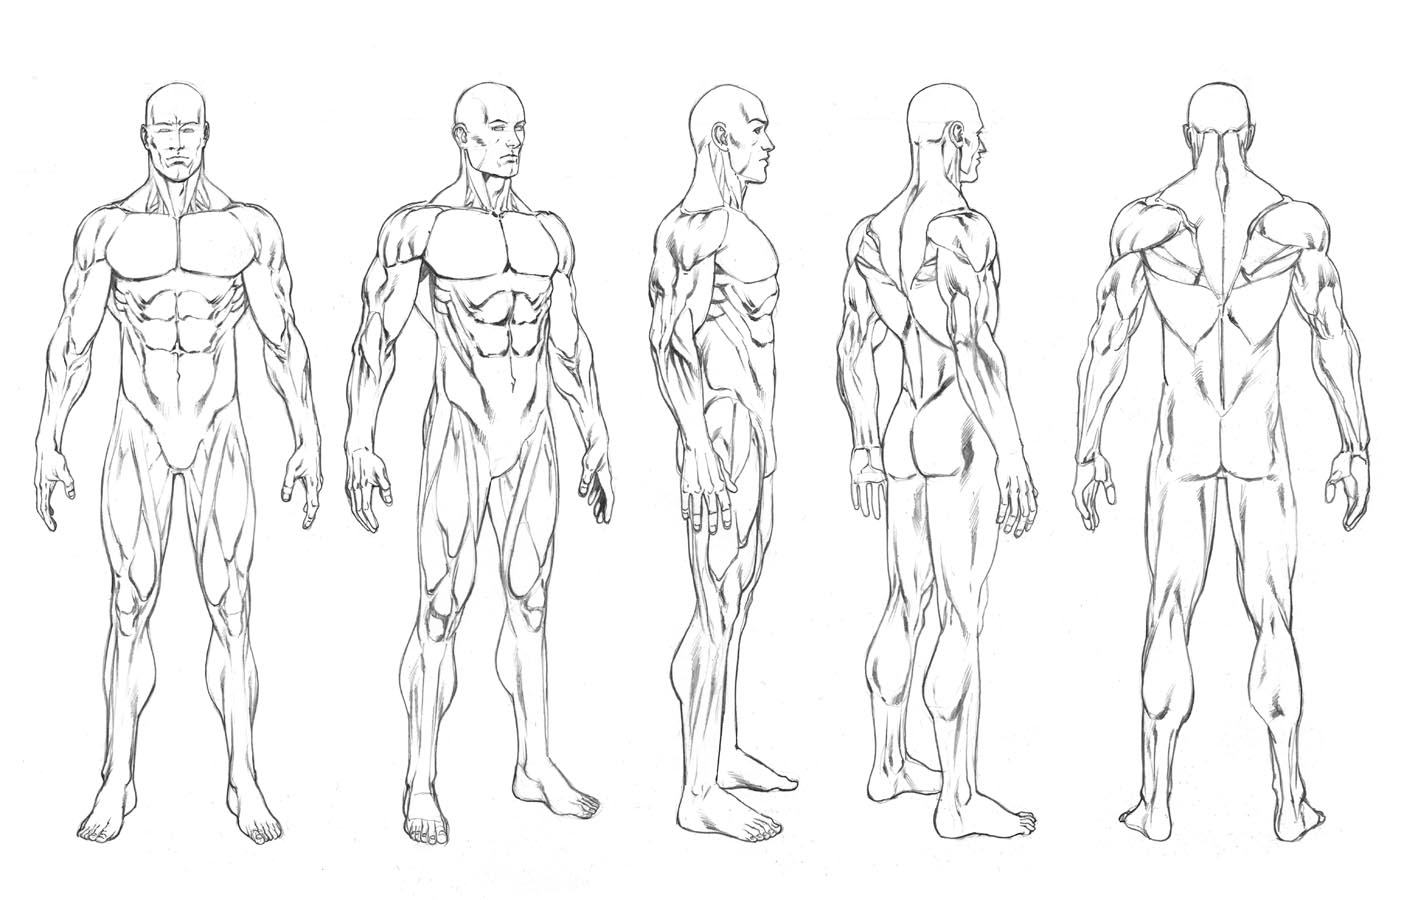 Costume Sketch Templates | Bonus! An early sketch of Titan's